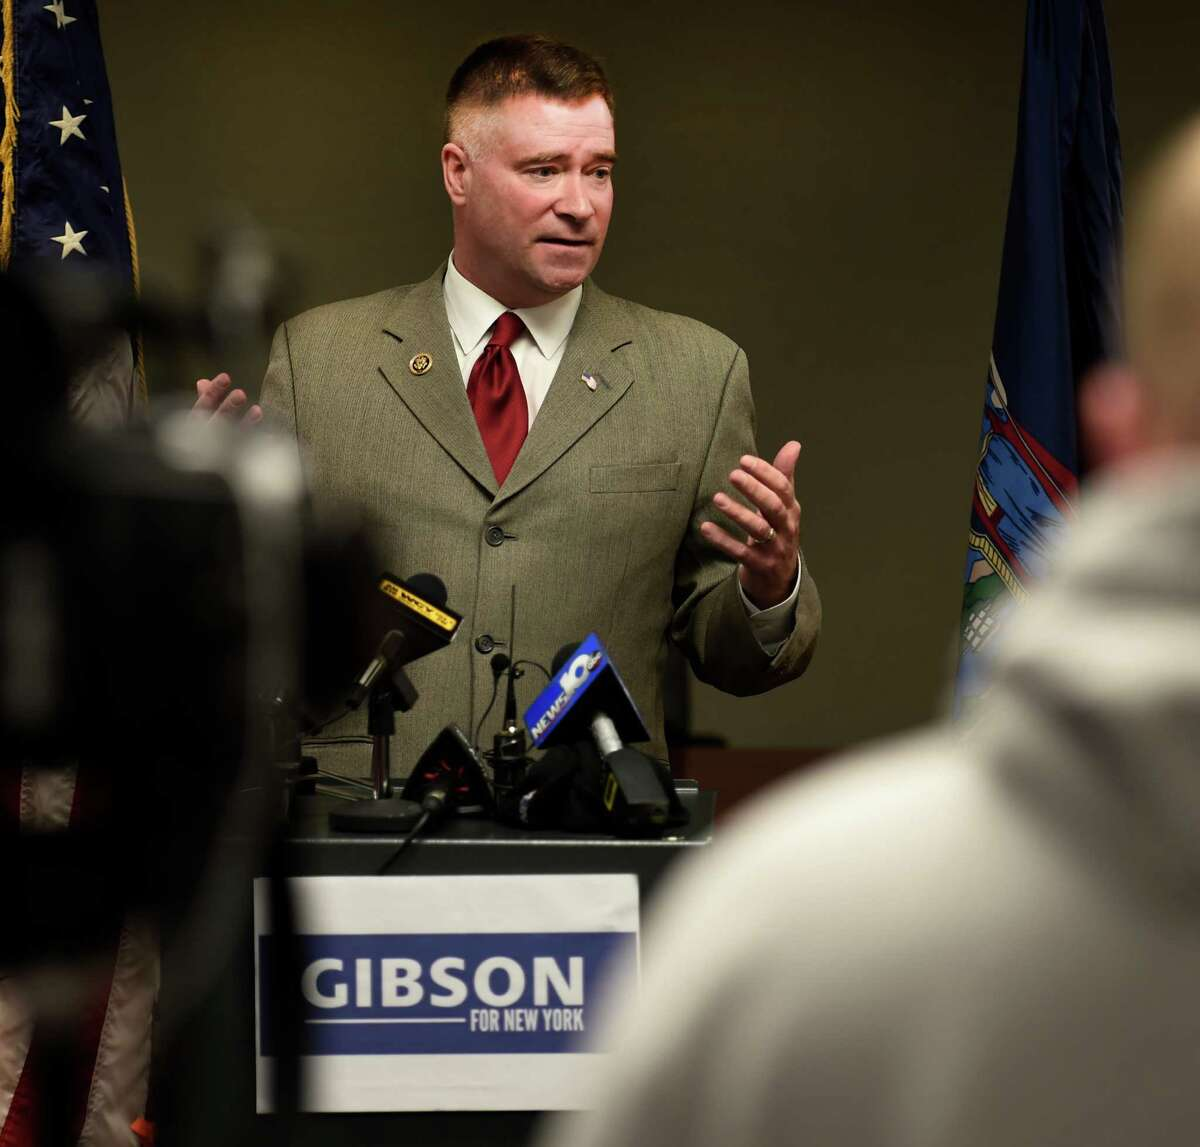 Congressman Chris Gibson holds a media availability to answer questions about the exploratory committee he has formed to run for Governor of New York in 2018 on Feb. 9, 2015, at Albany International Airport in Colonie, N.Y. (Skip Dickstein/Times Union archive)